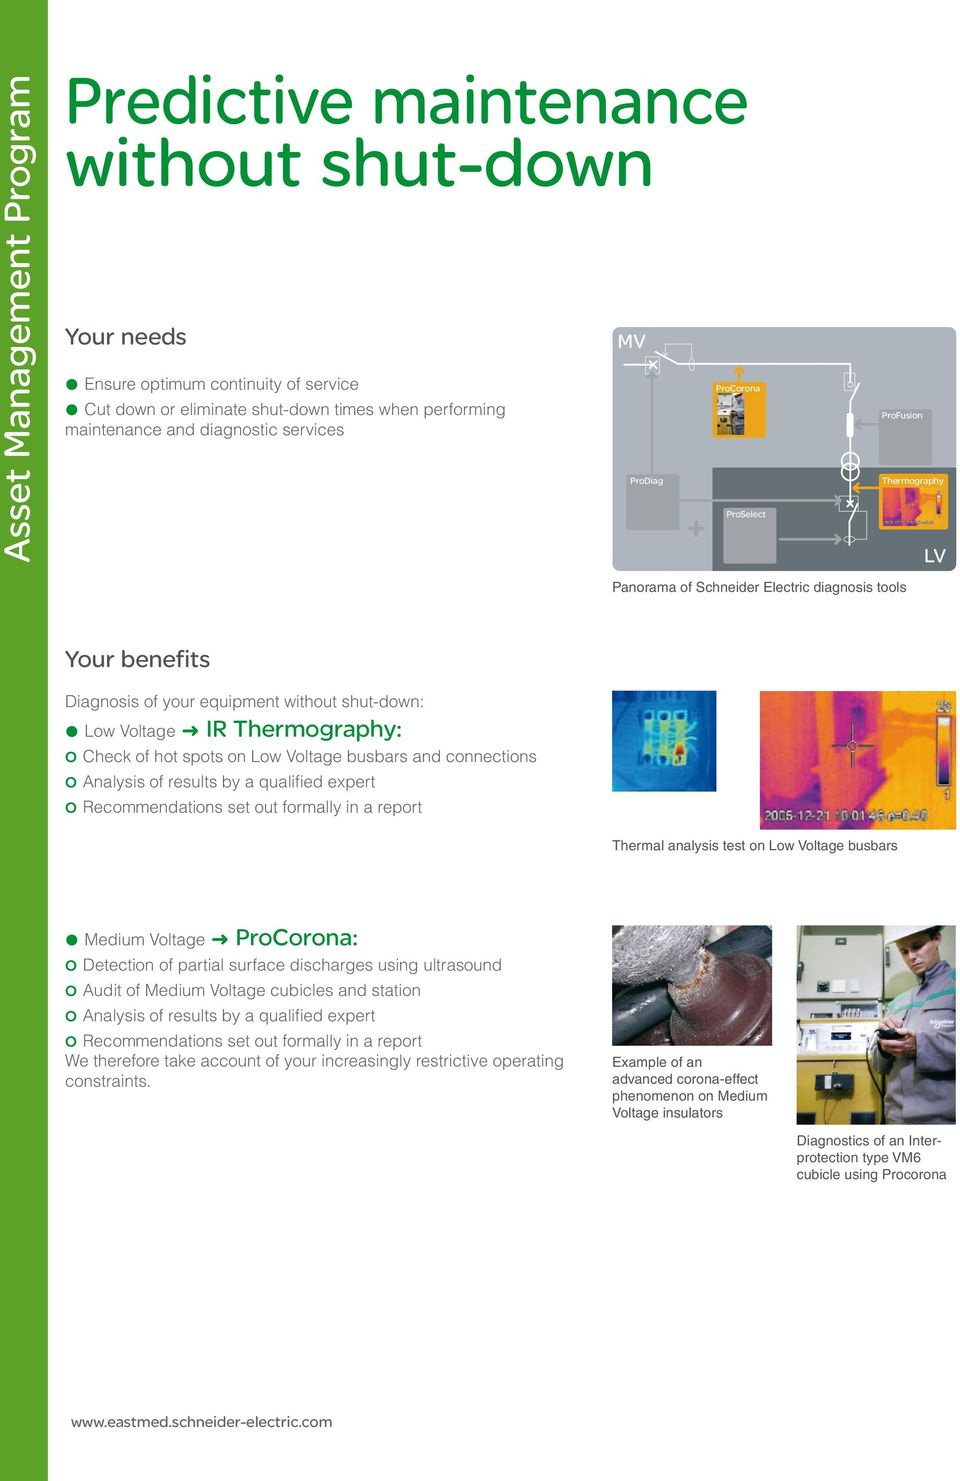 equipment without shut-down: @ Low Voltage ; IR Thermography: o Check of